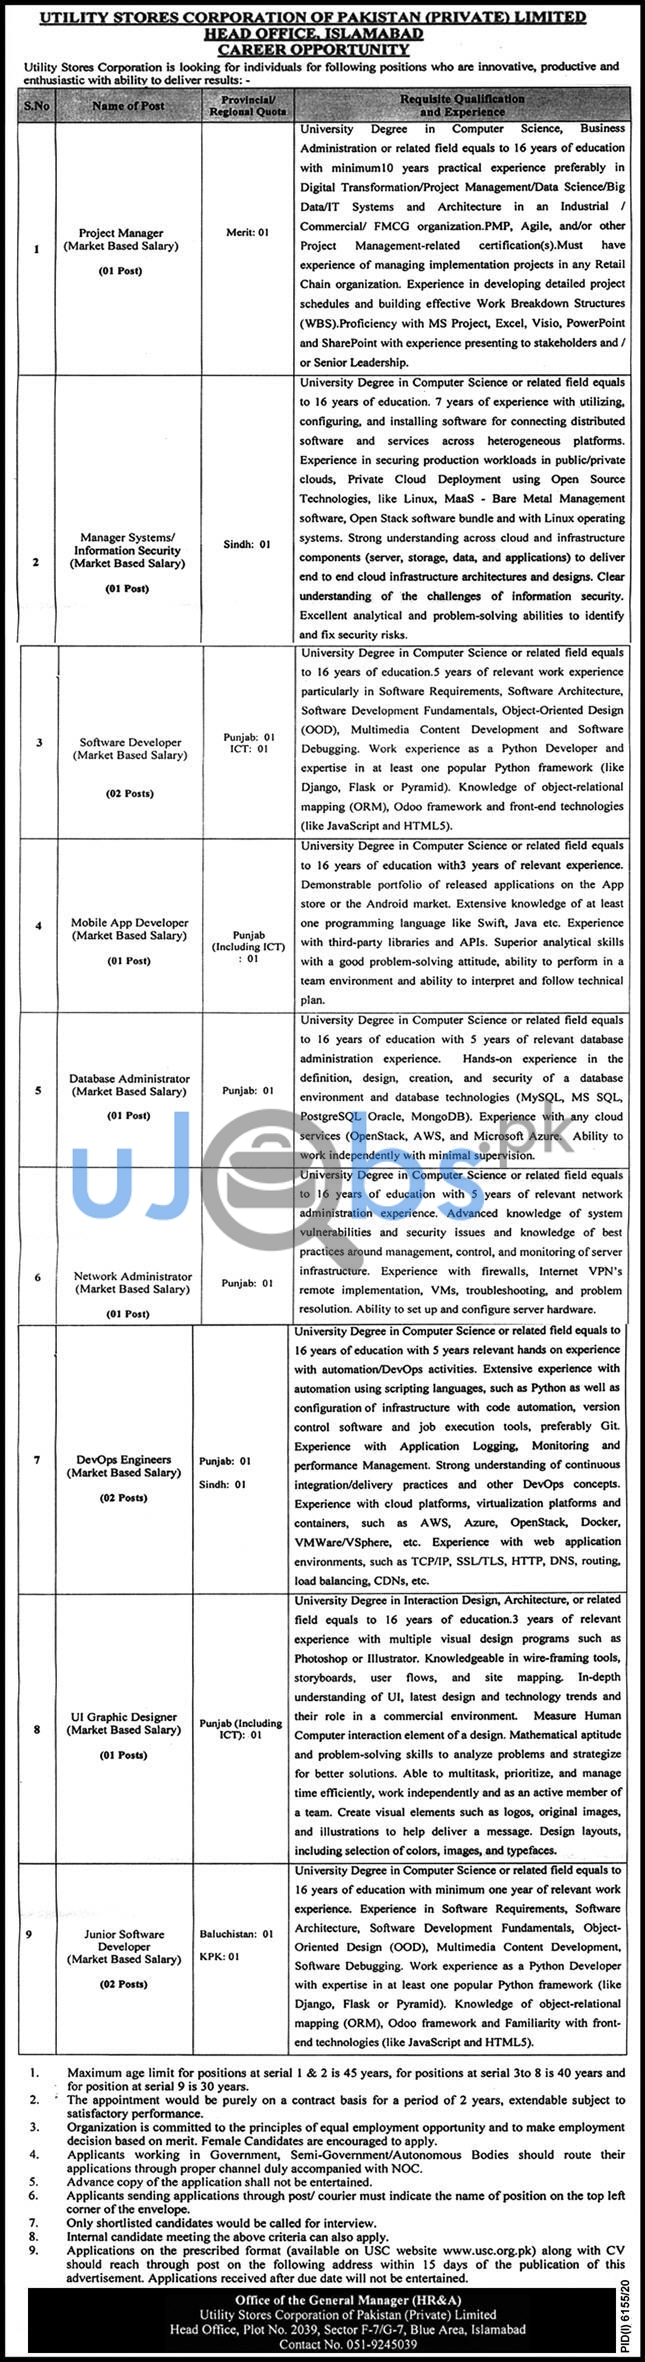 Utility Stores Corporation of Pakistan Private Limited Jobs in Islamabad May 2021